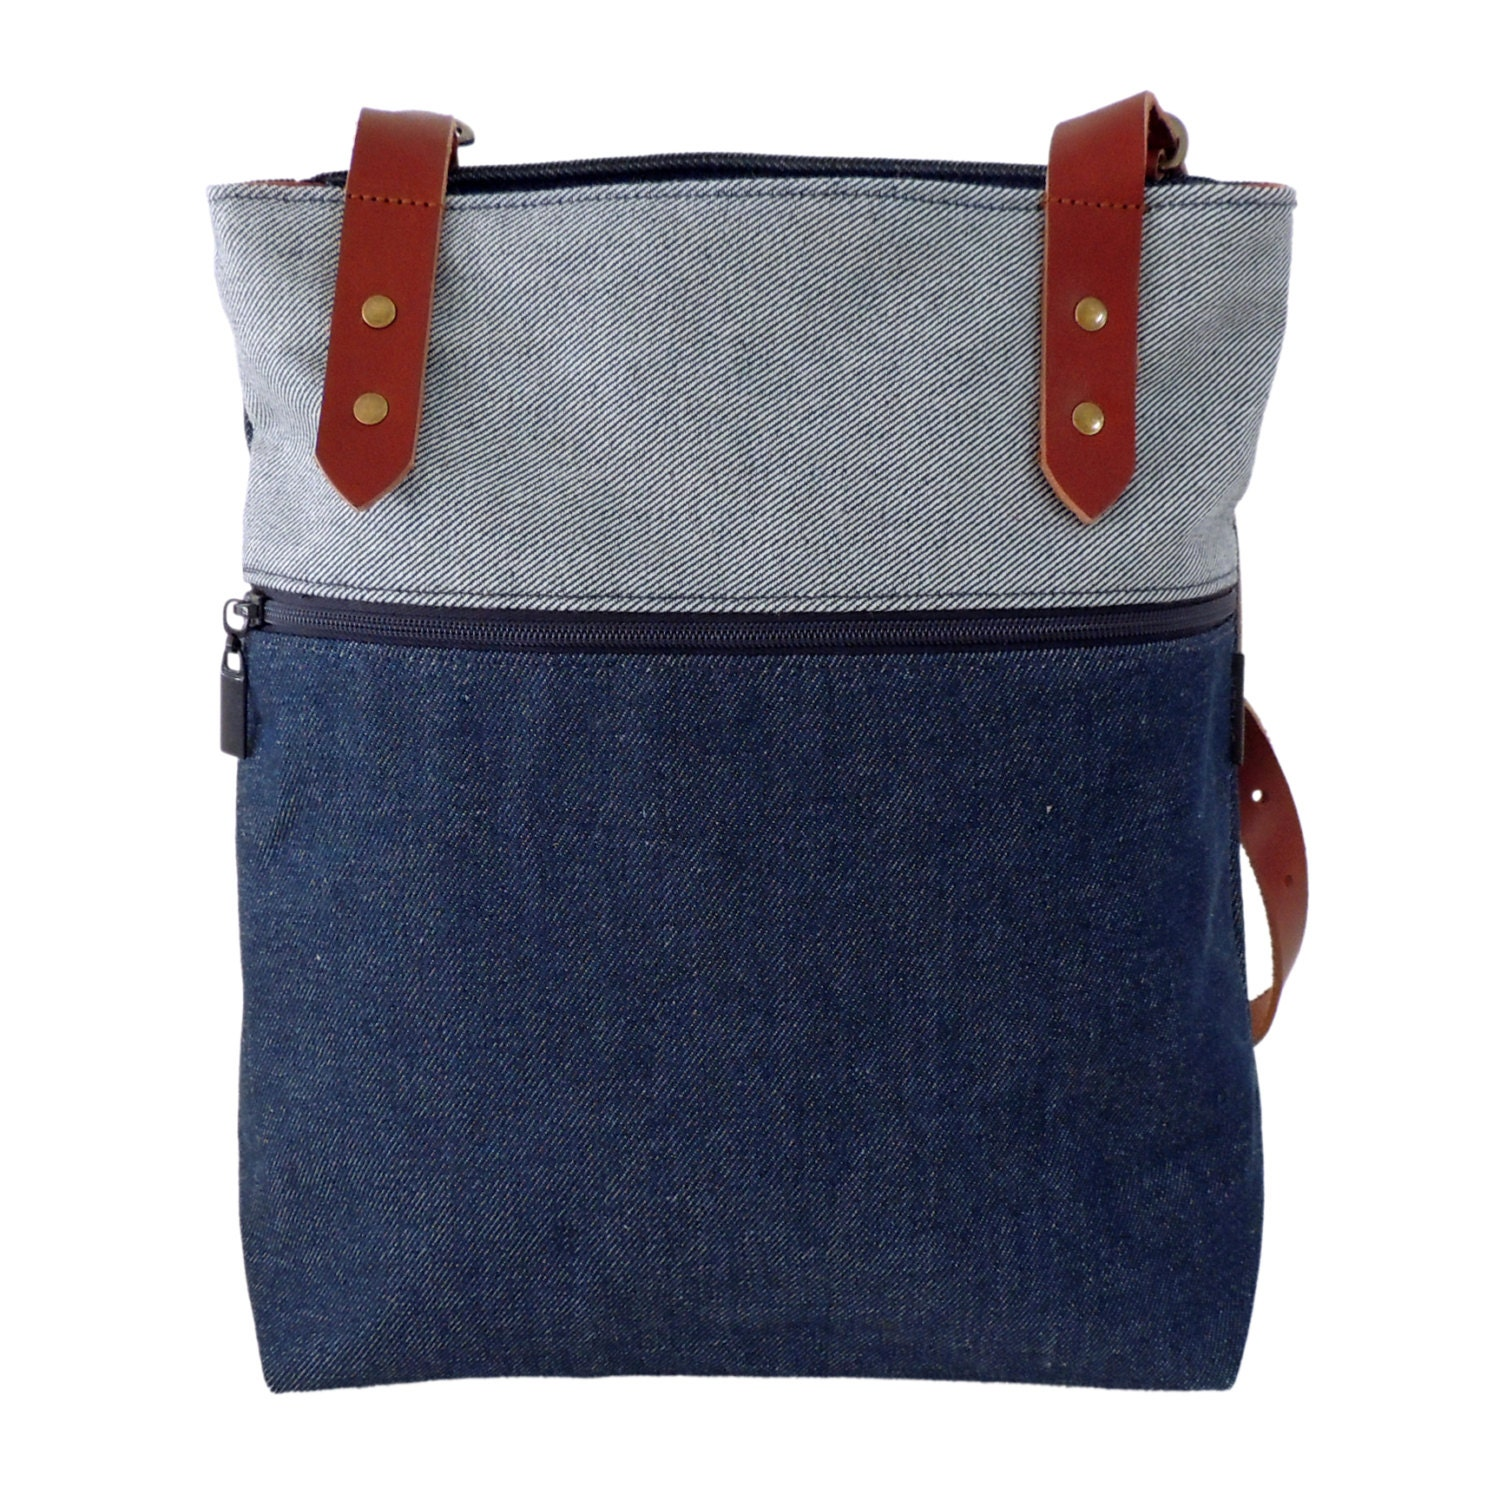 Denim Backpack/ Denim Tote Bag/ Convertible Backpack Purse/